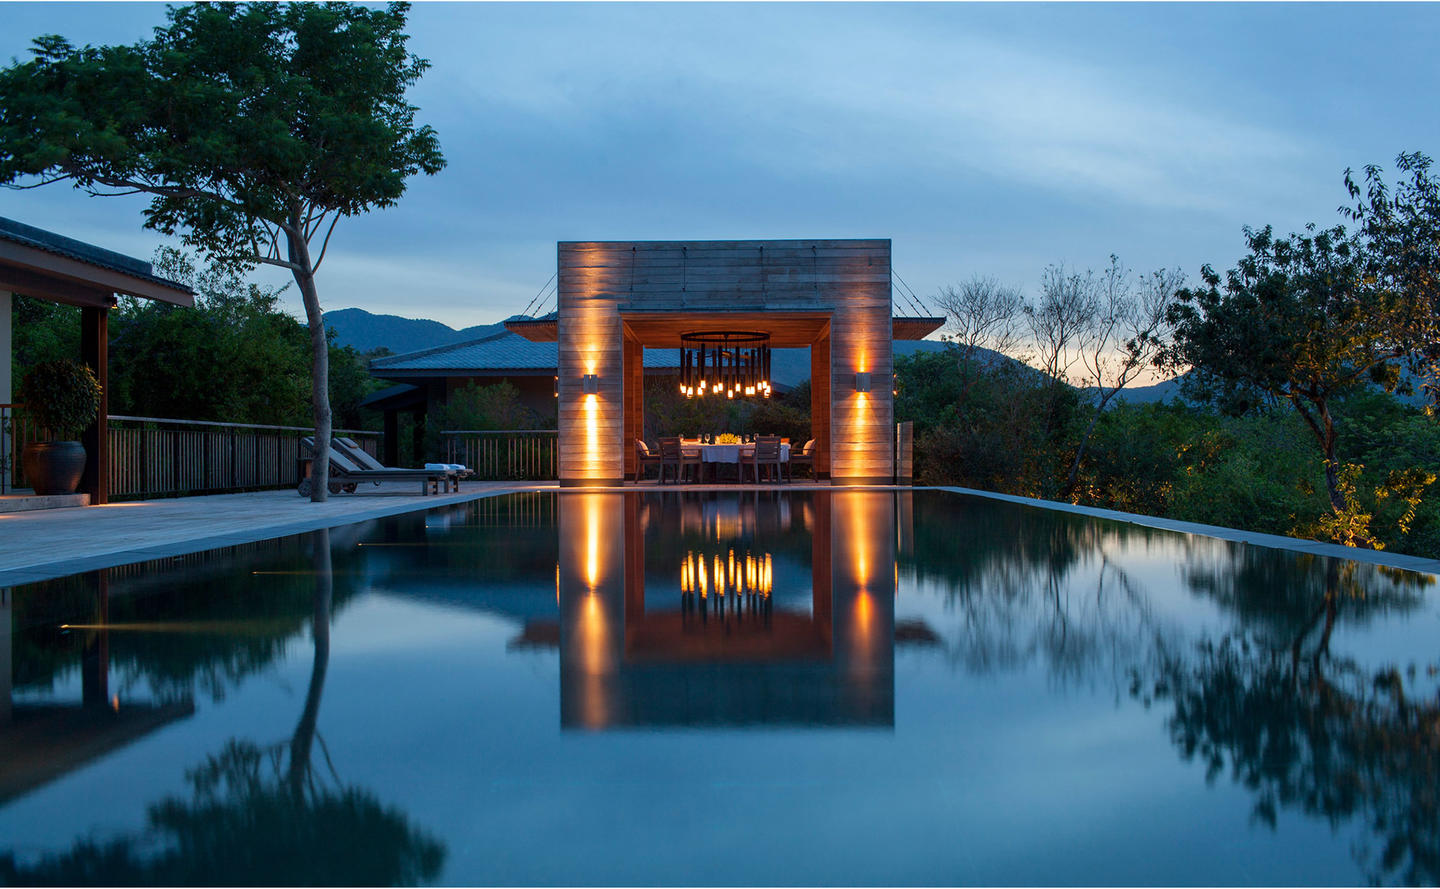 Swimming Pool at Night, Four-Bedroom Residence - Amanoi, Vietnam